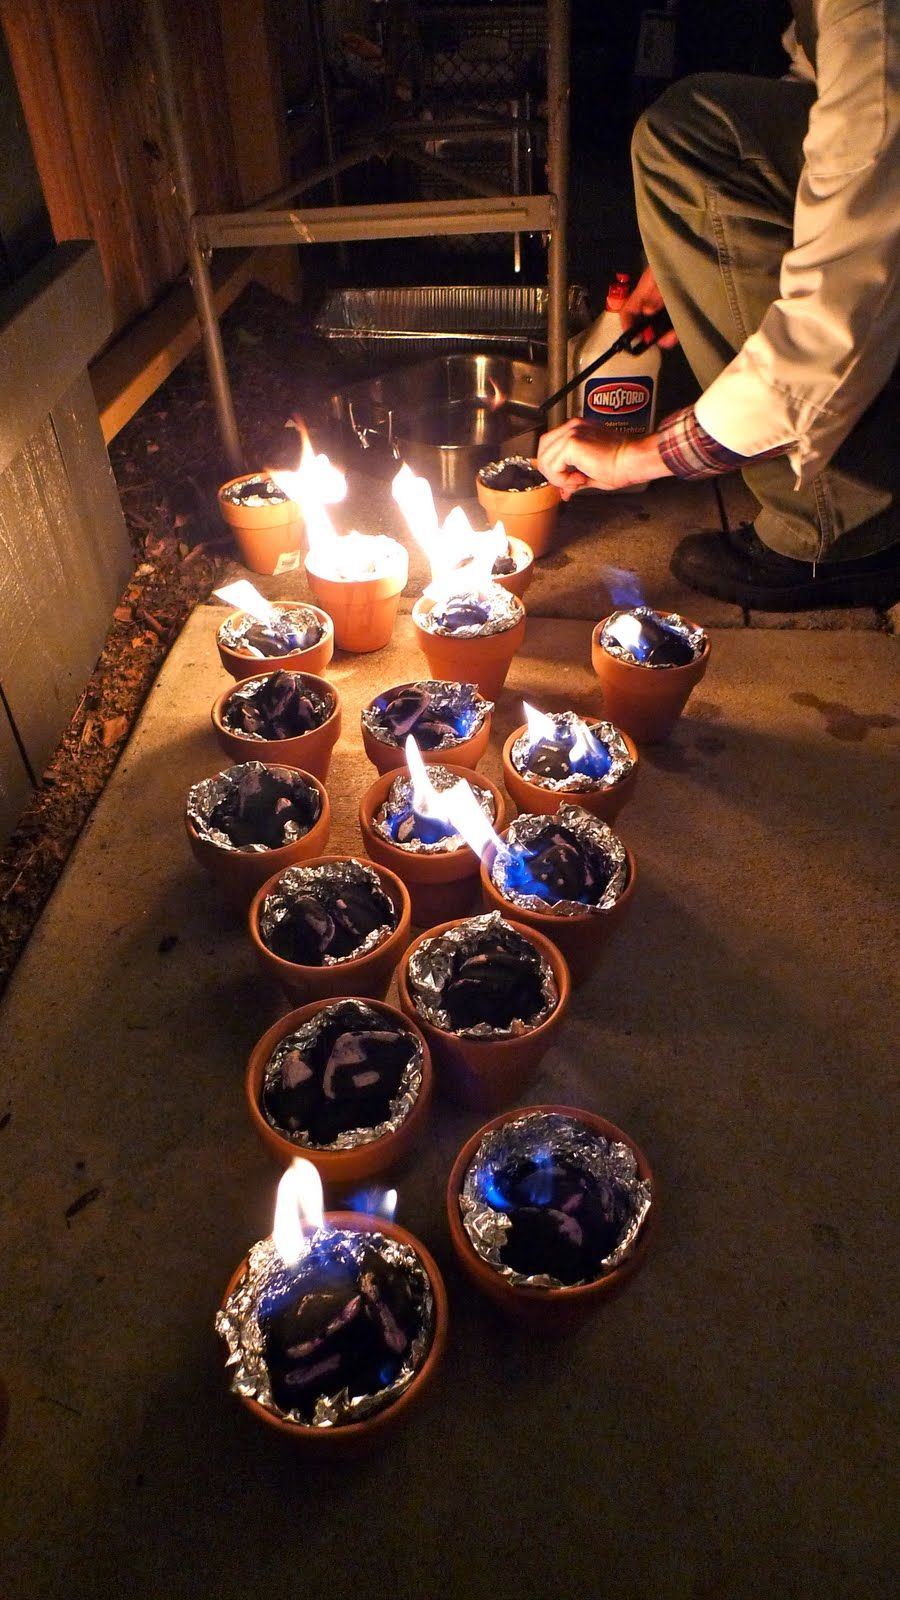 charcoal in terracotta pots lined with foil for tabletop s'mores!